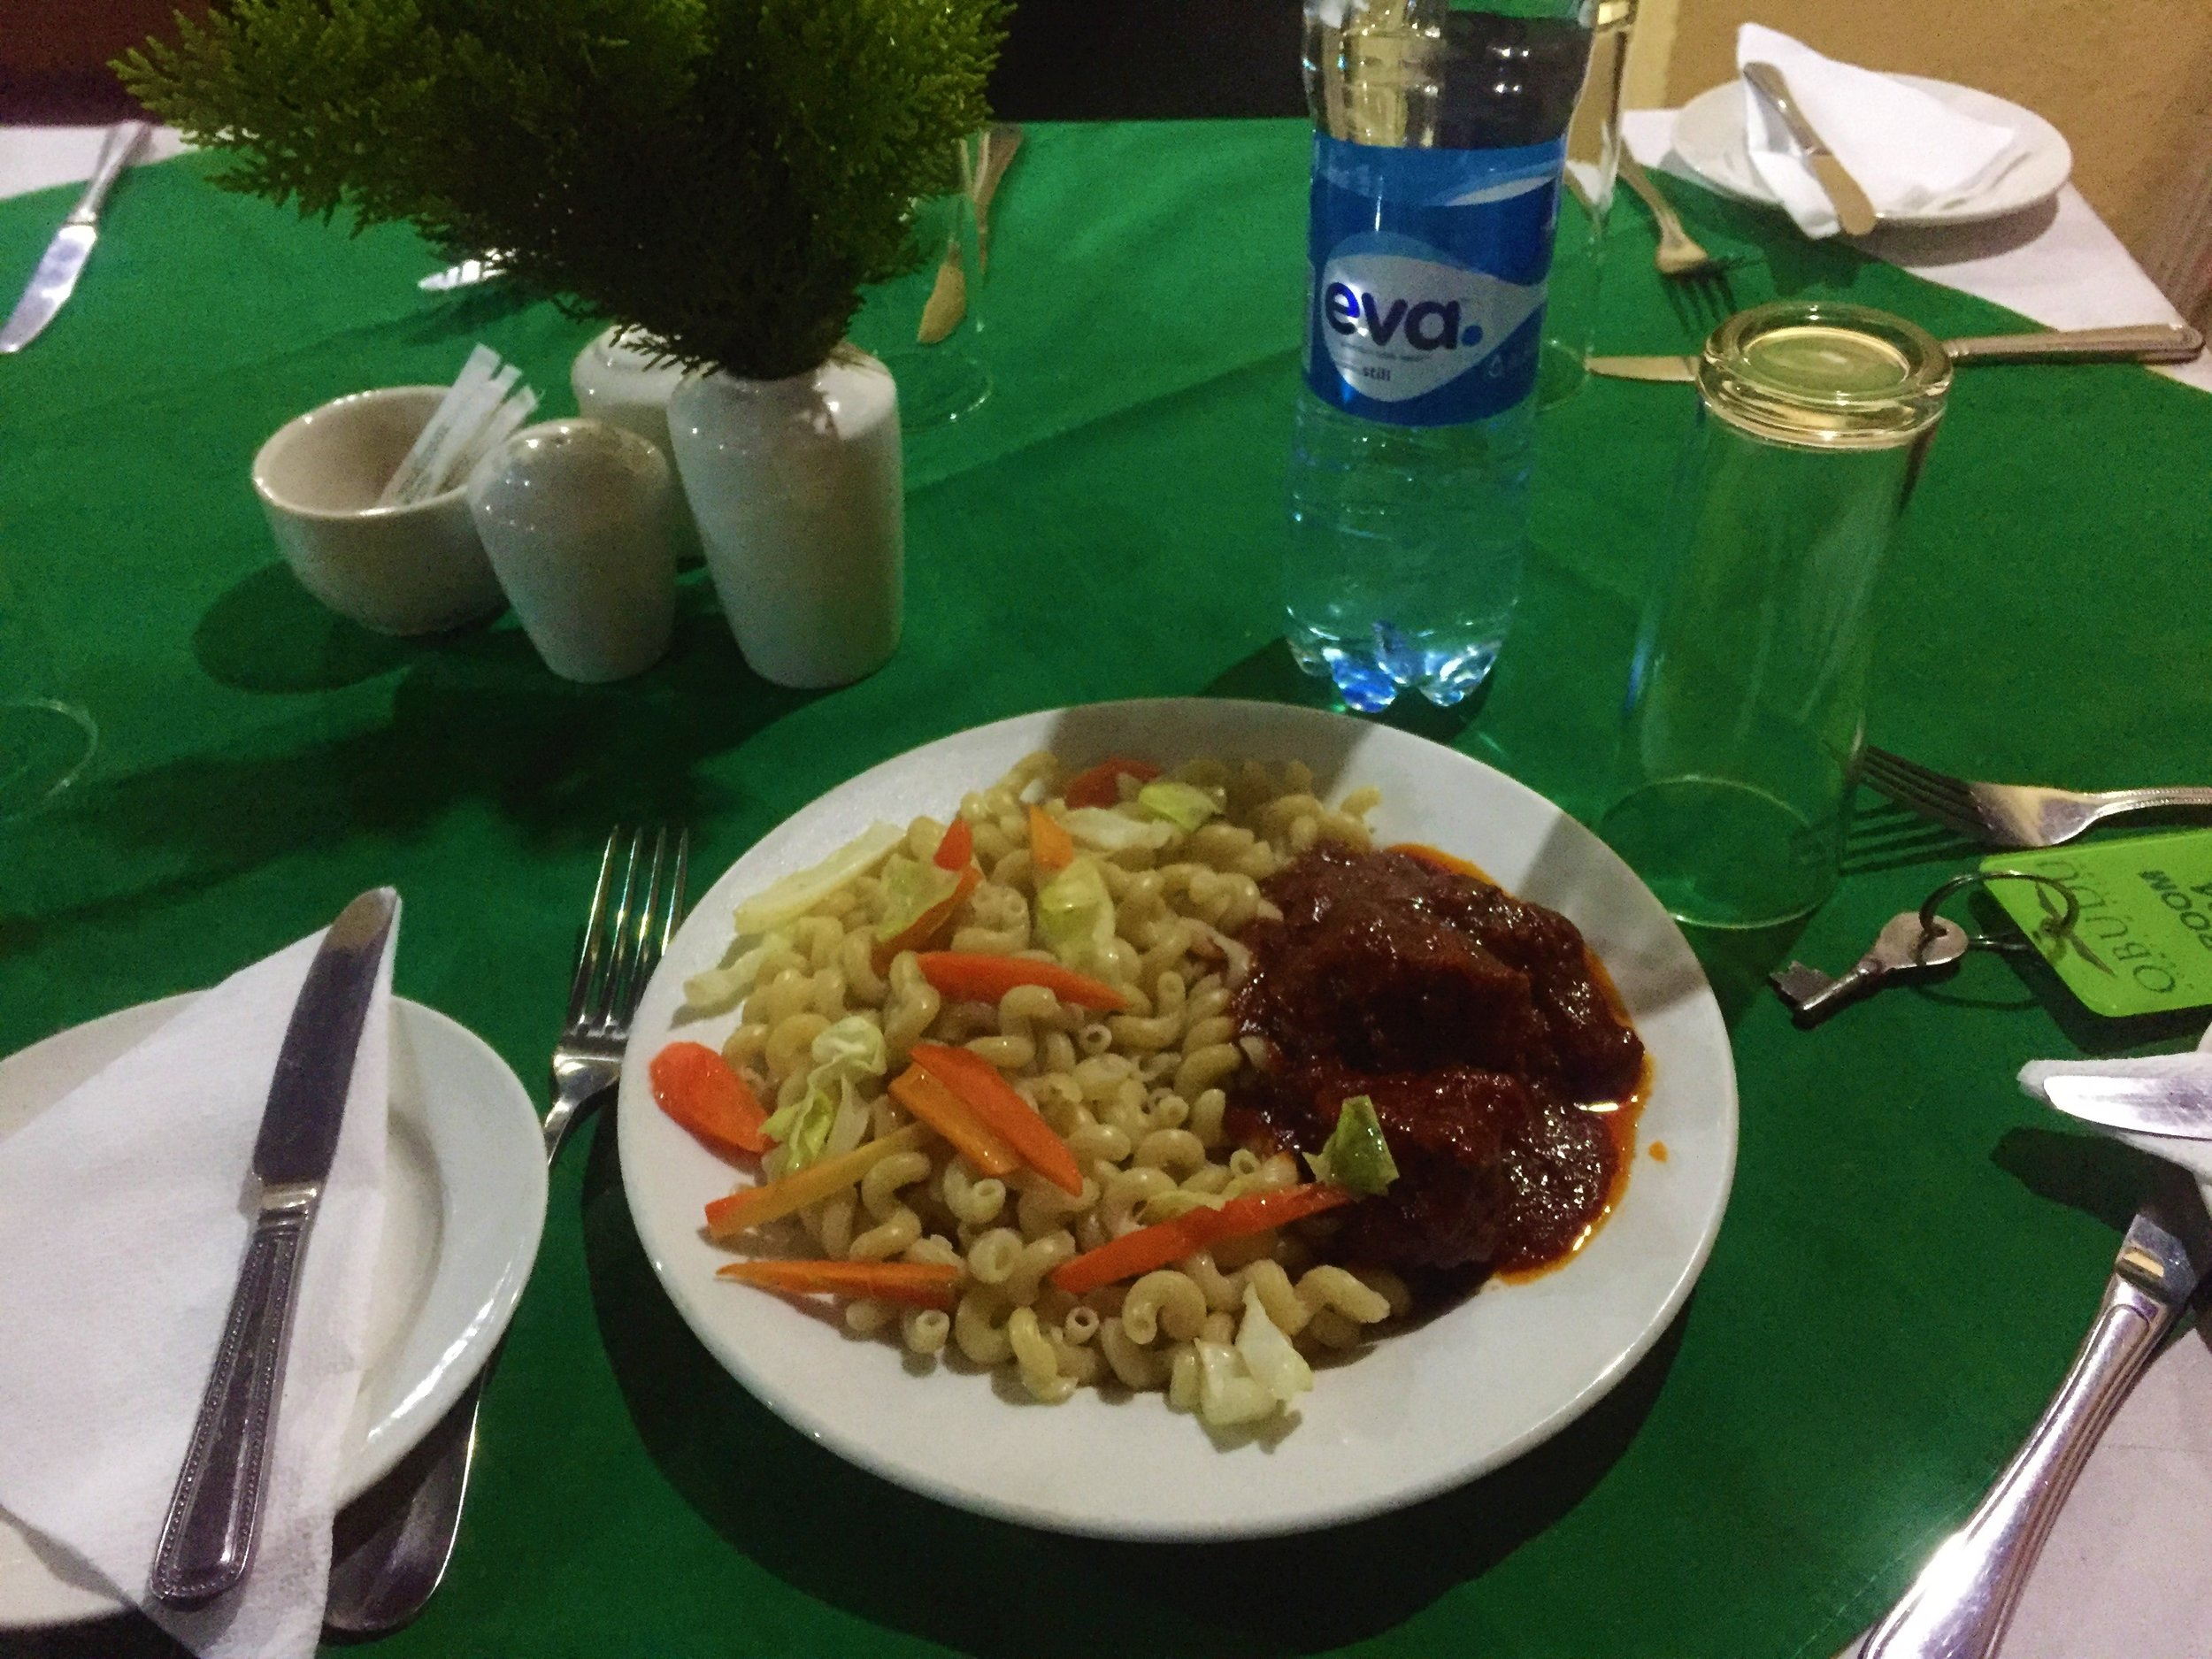 Obudu Resort Hotel | The Ajala BugBreakfast and Dinner were really good. Breakfast is complimentary and Dinner cost about N2,500